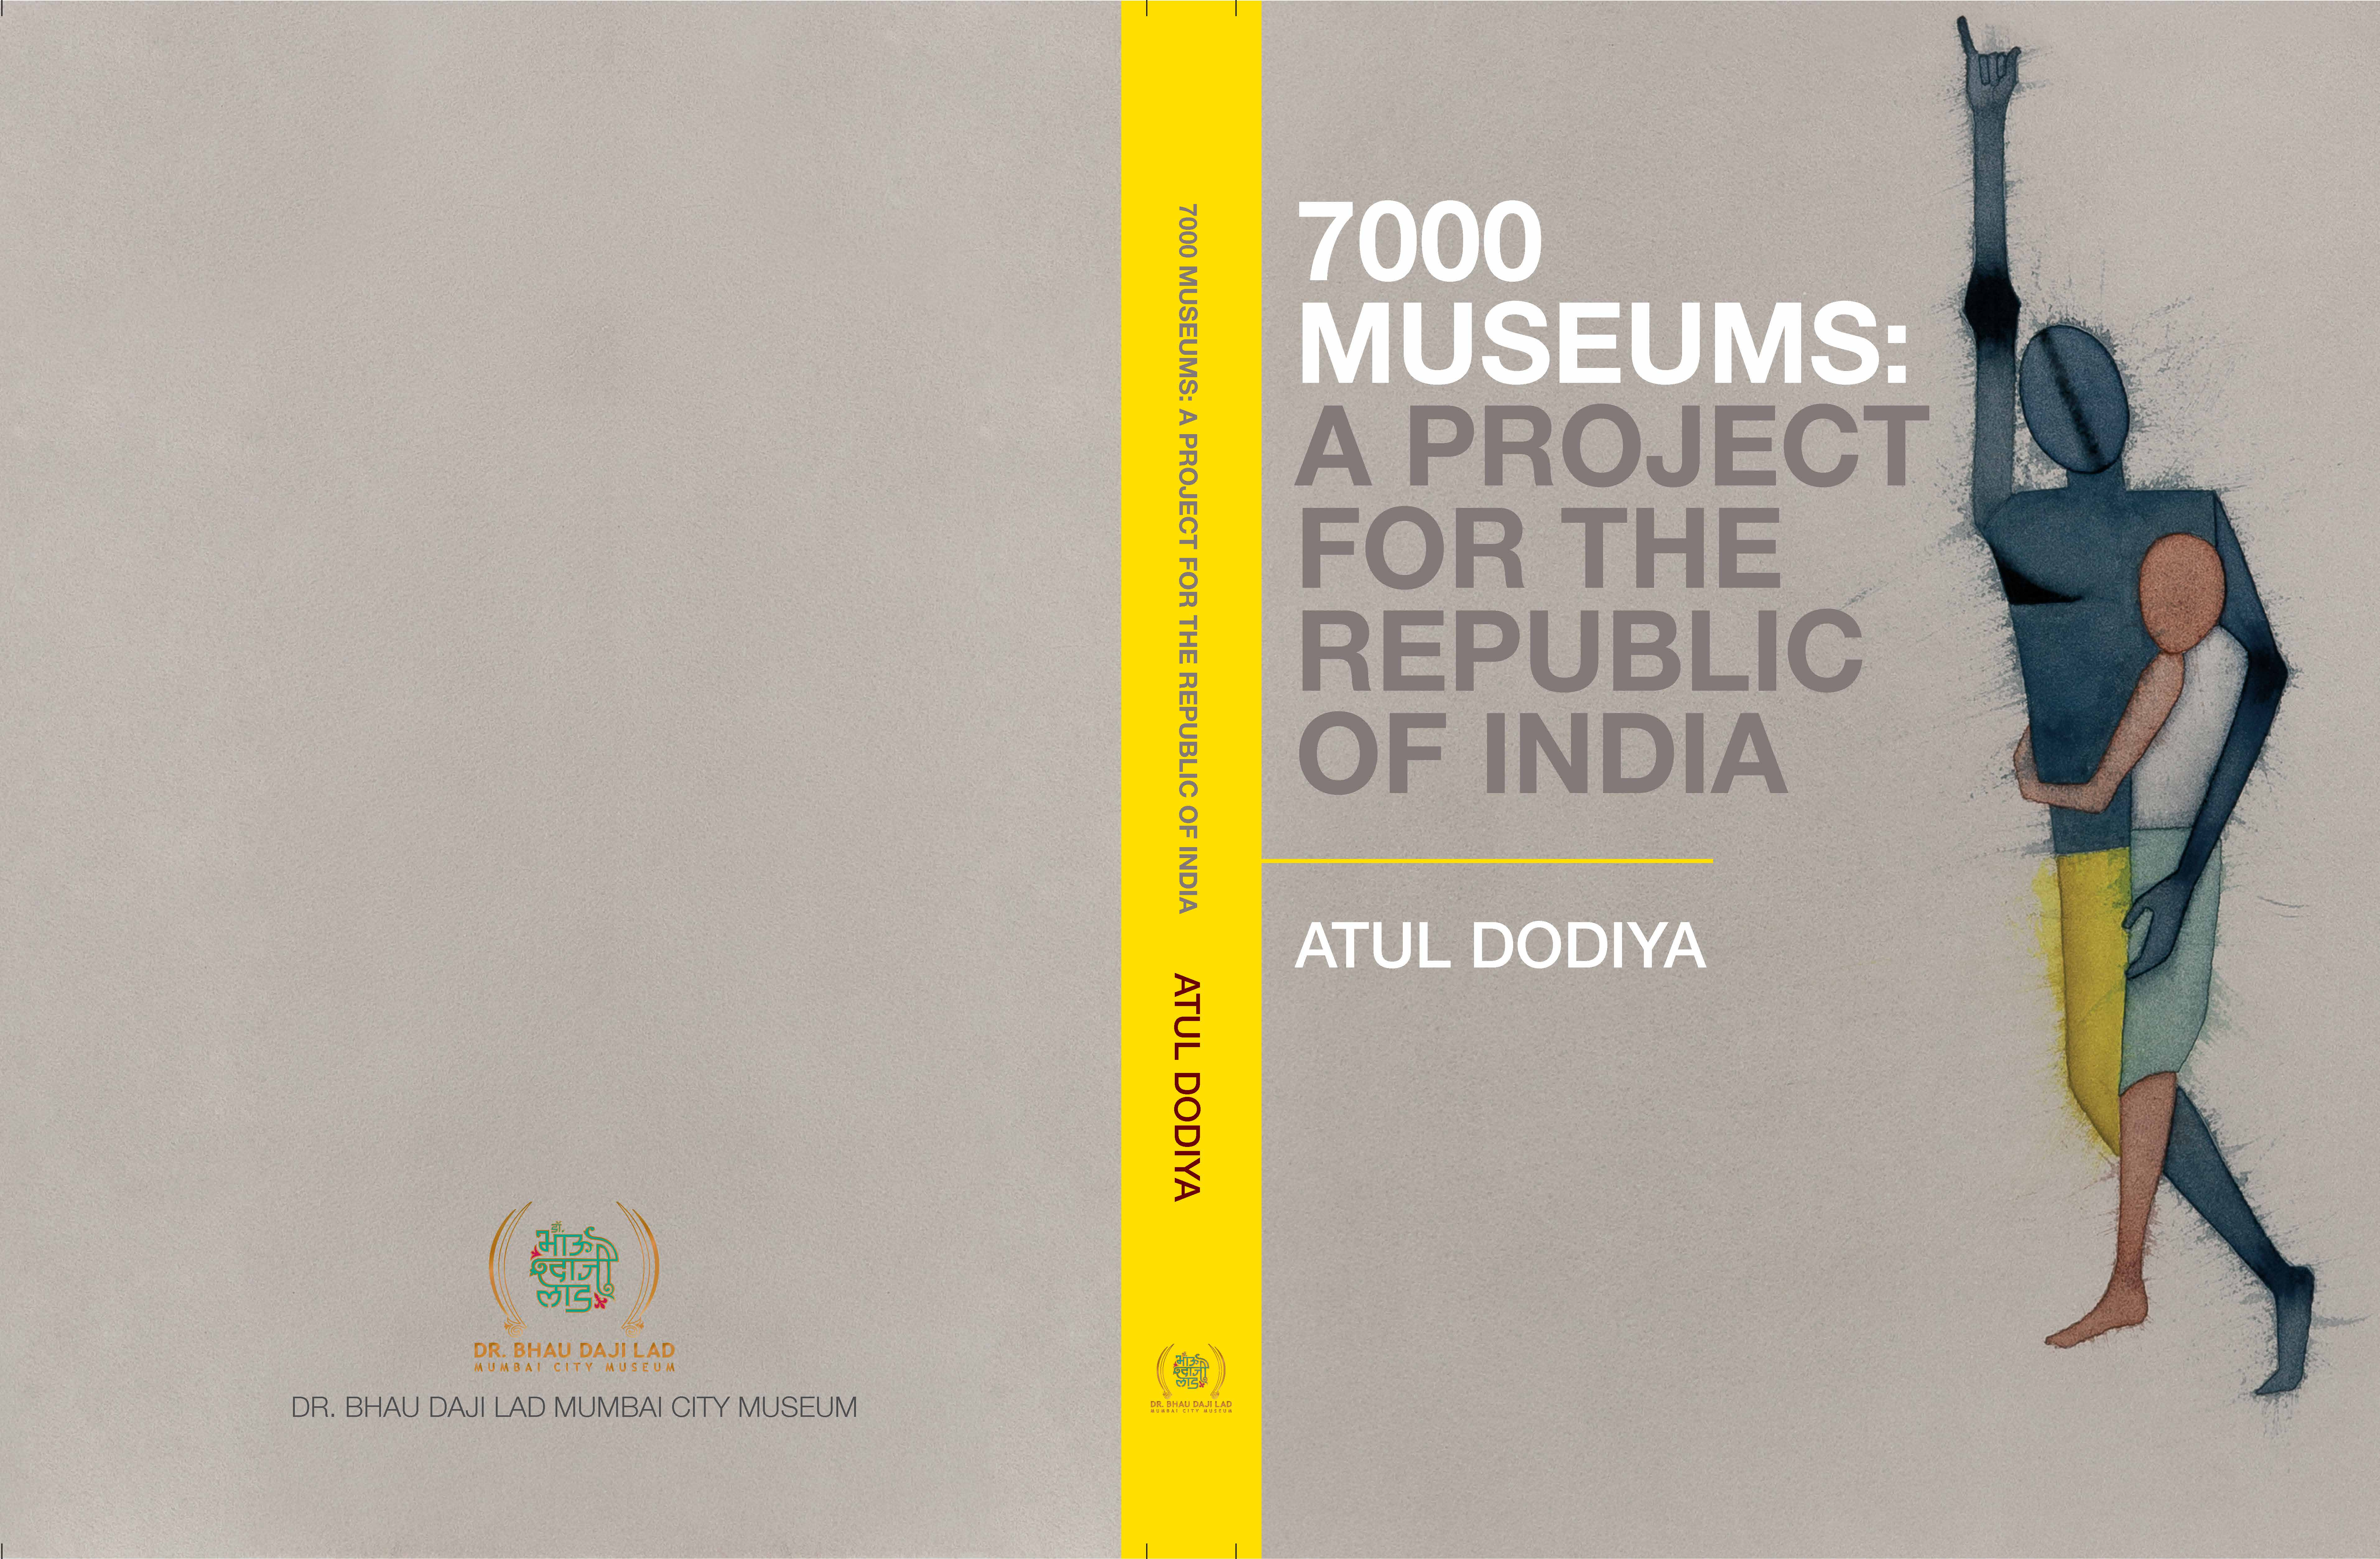 7000 Museums: A project for the Republic of India